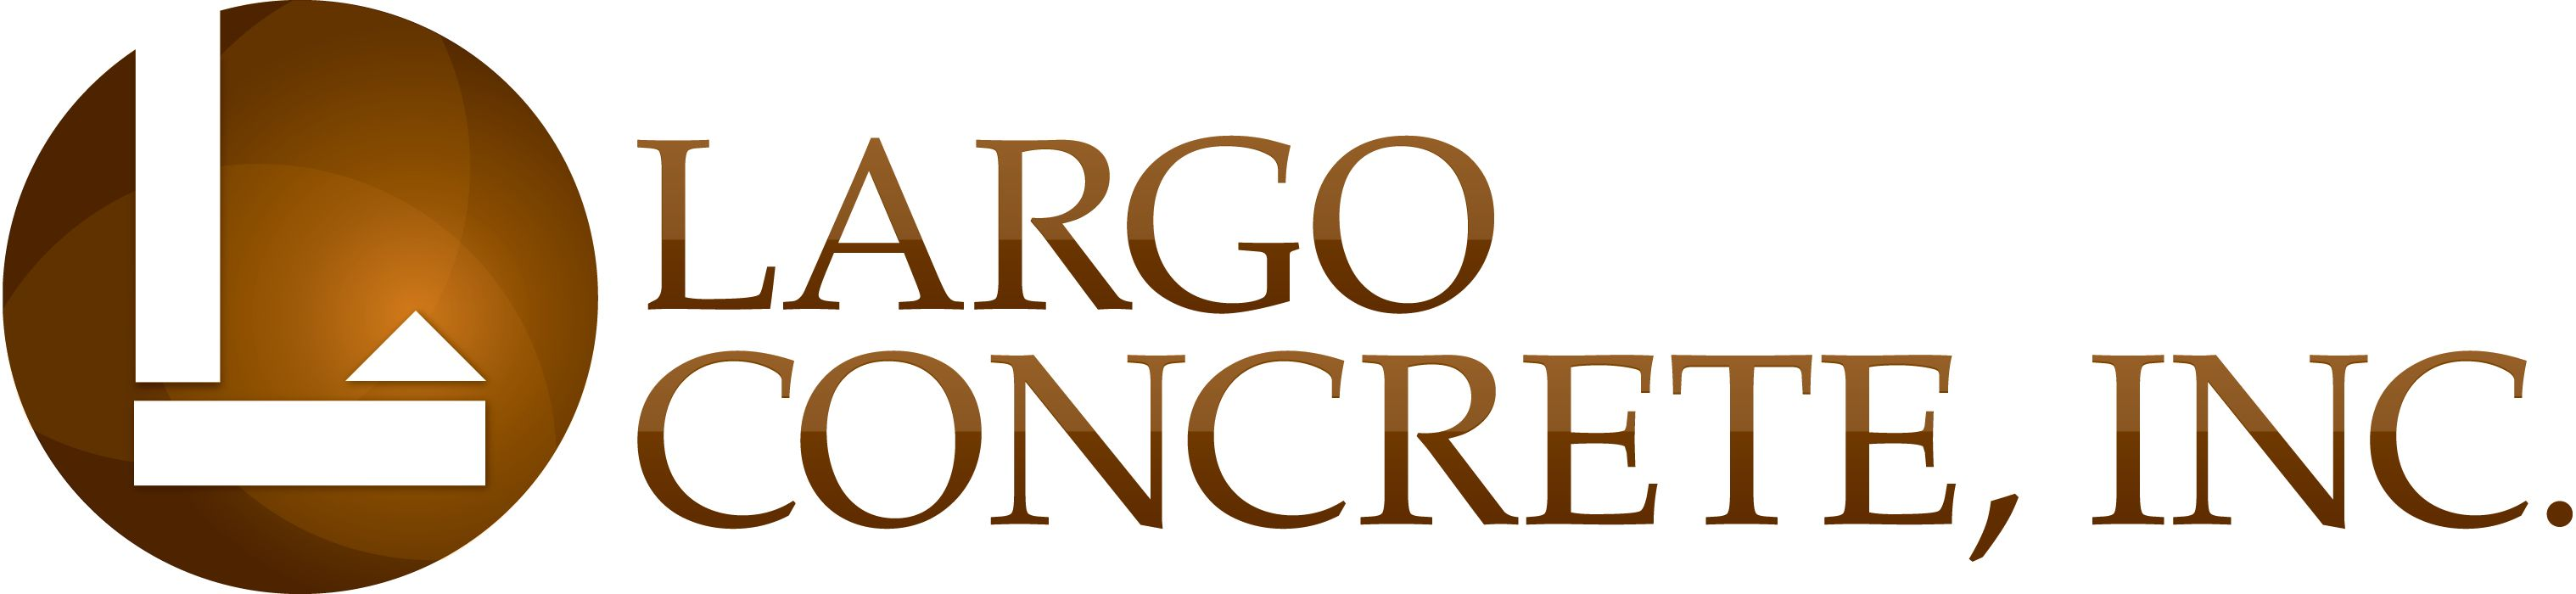 Largo Concrete Inc.